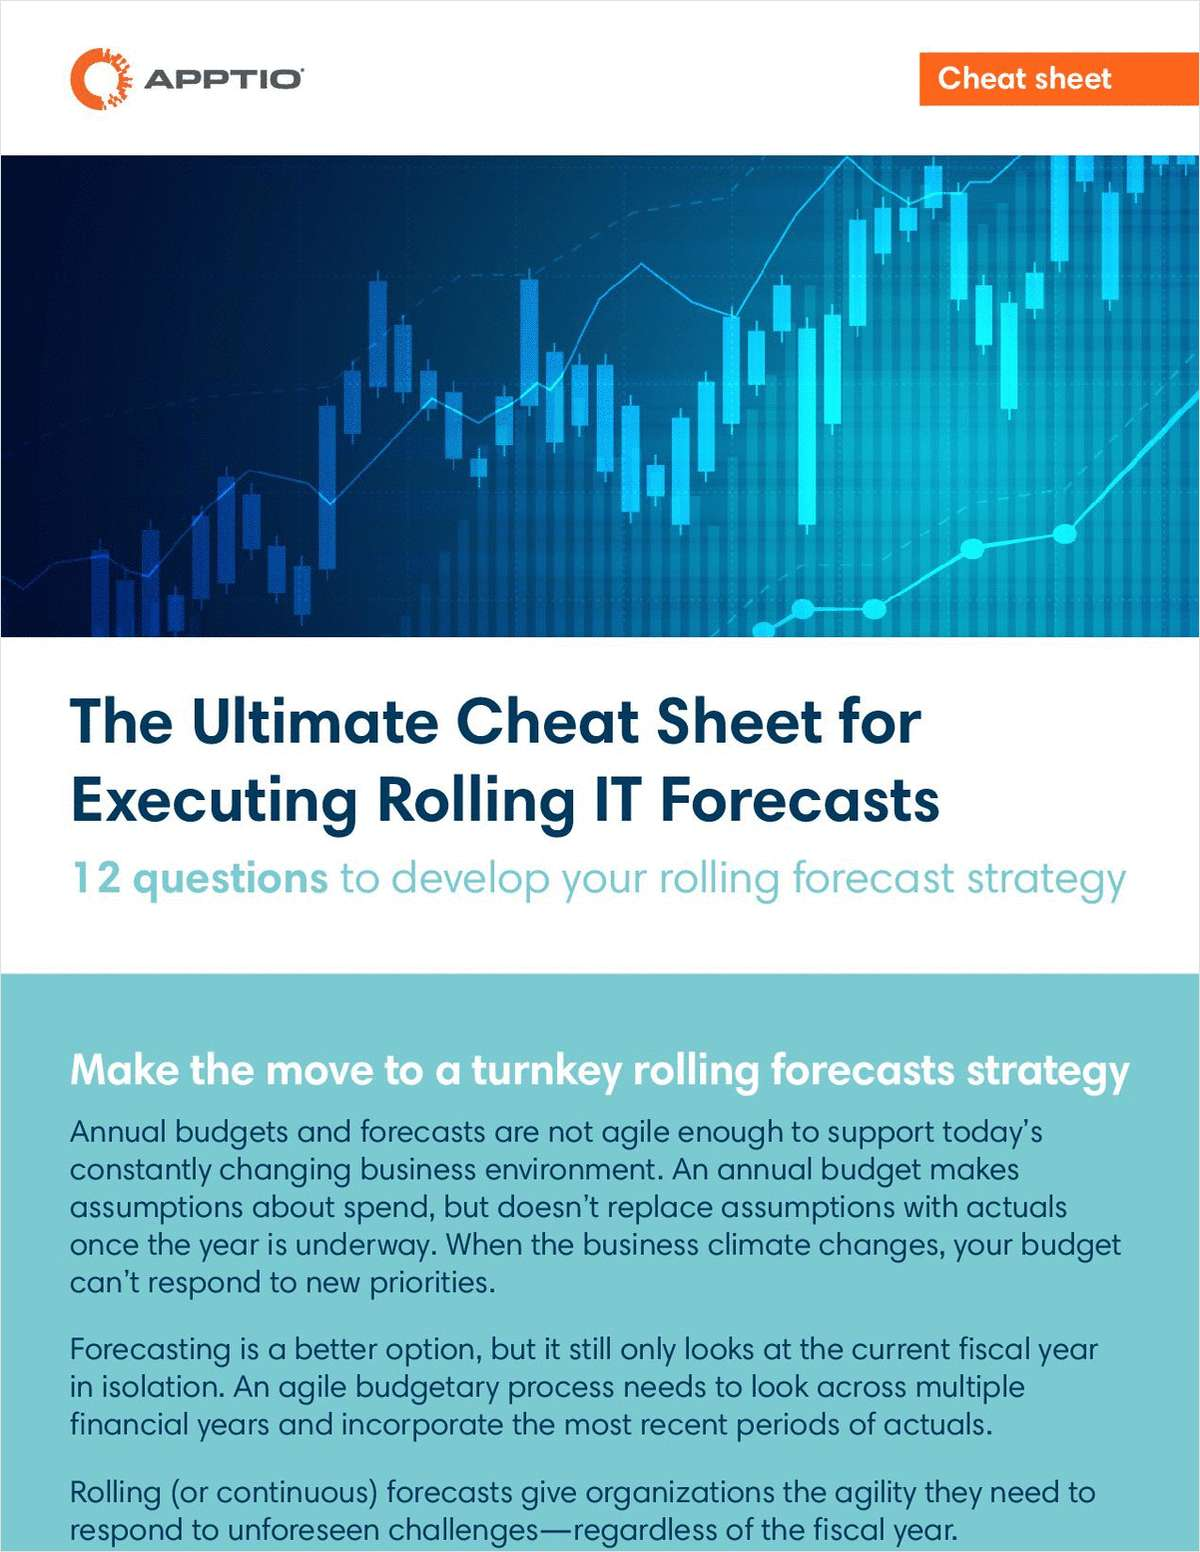 The ultimate cheatsheet for executing rolling IT Forecasts